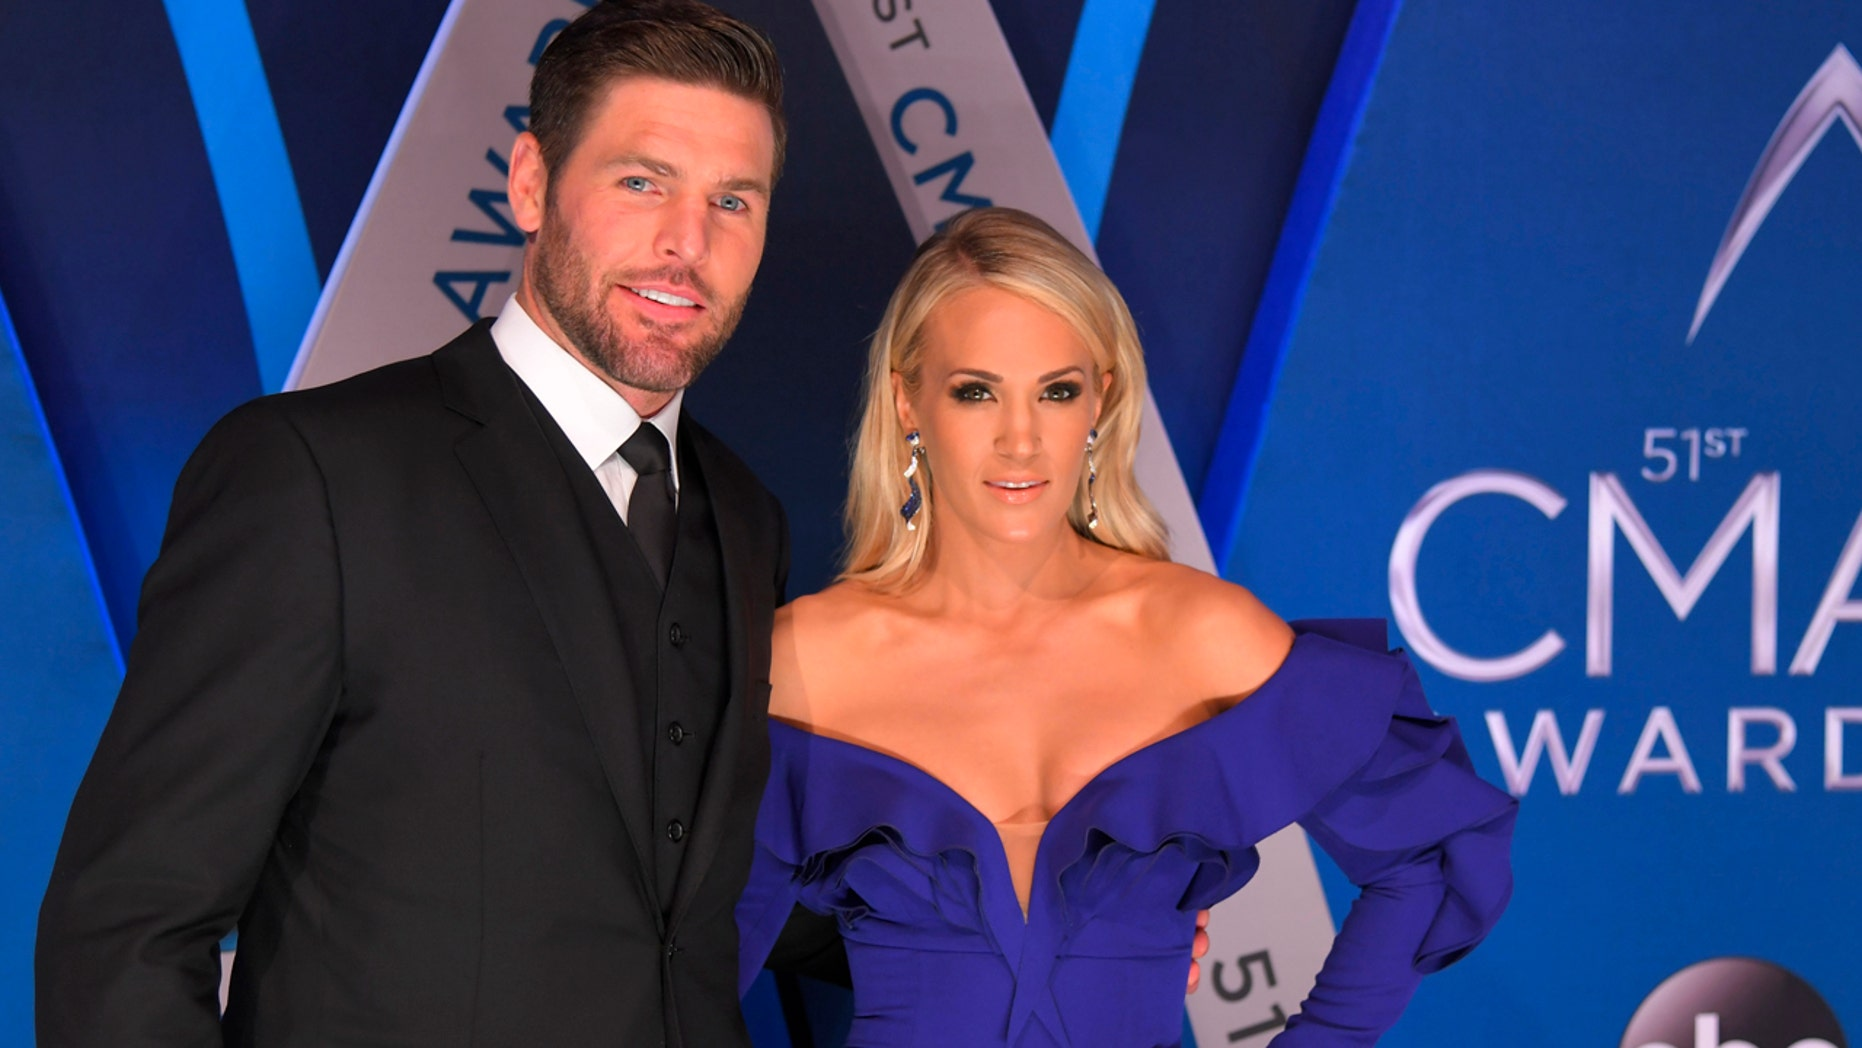 Singer Carrie Underwood and Mike Fisher attend the 51st Country Music Association Awards in Nashville, Tennessee in 2017.